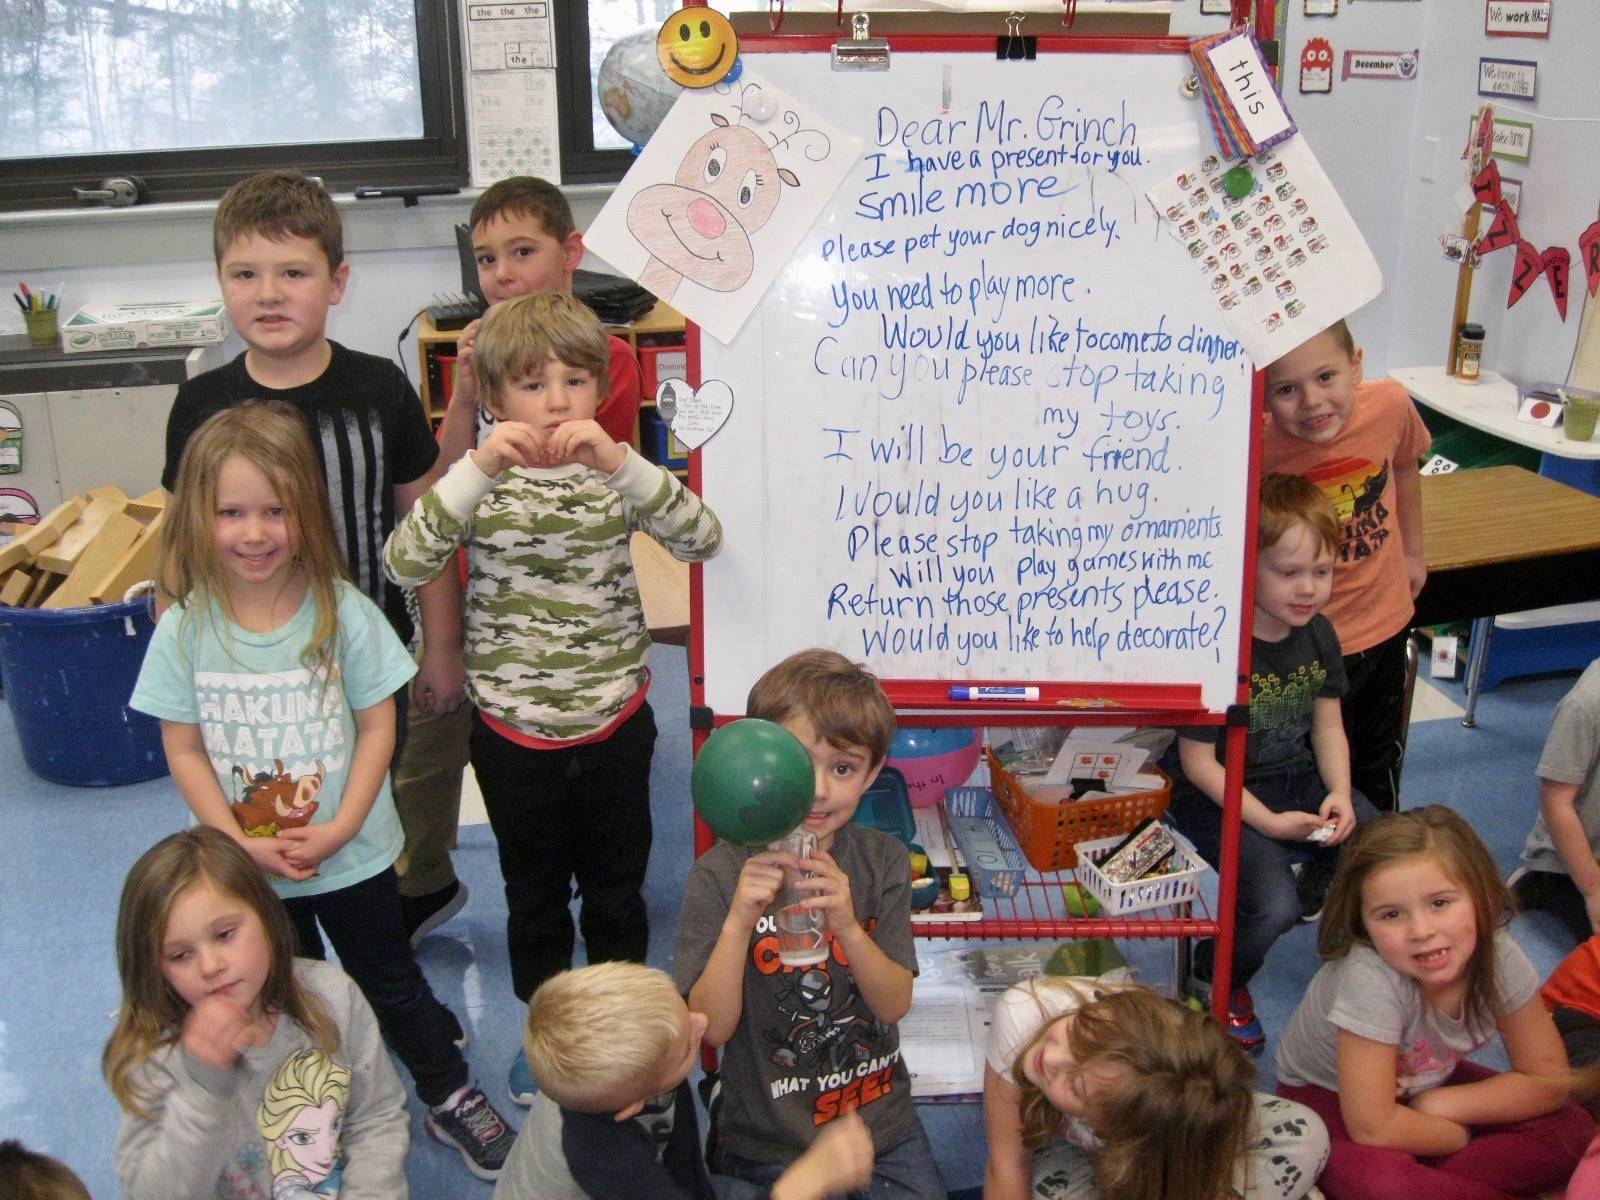 A class shows hearts in response to Mr. Grinch.